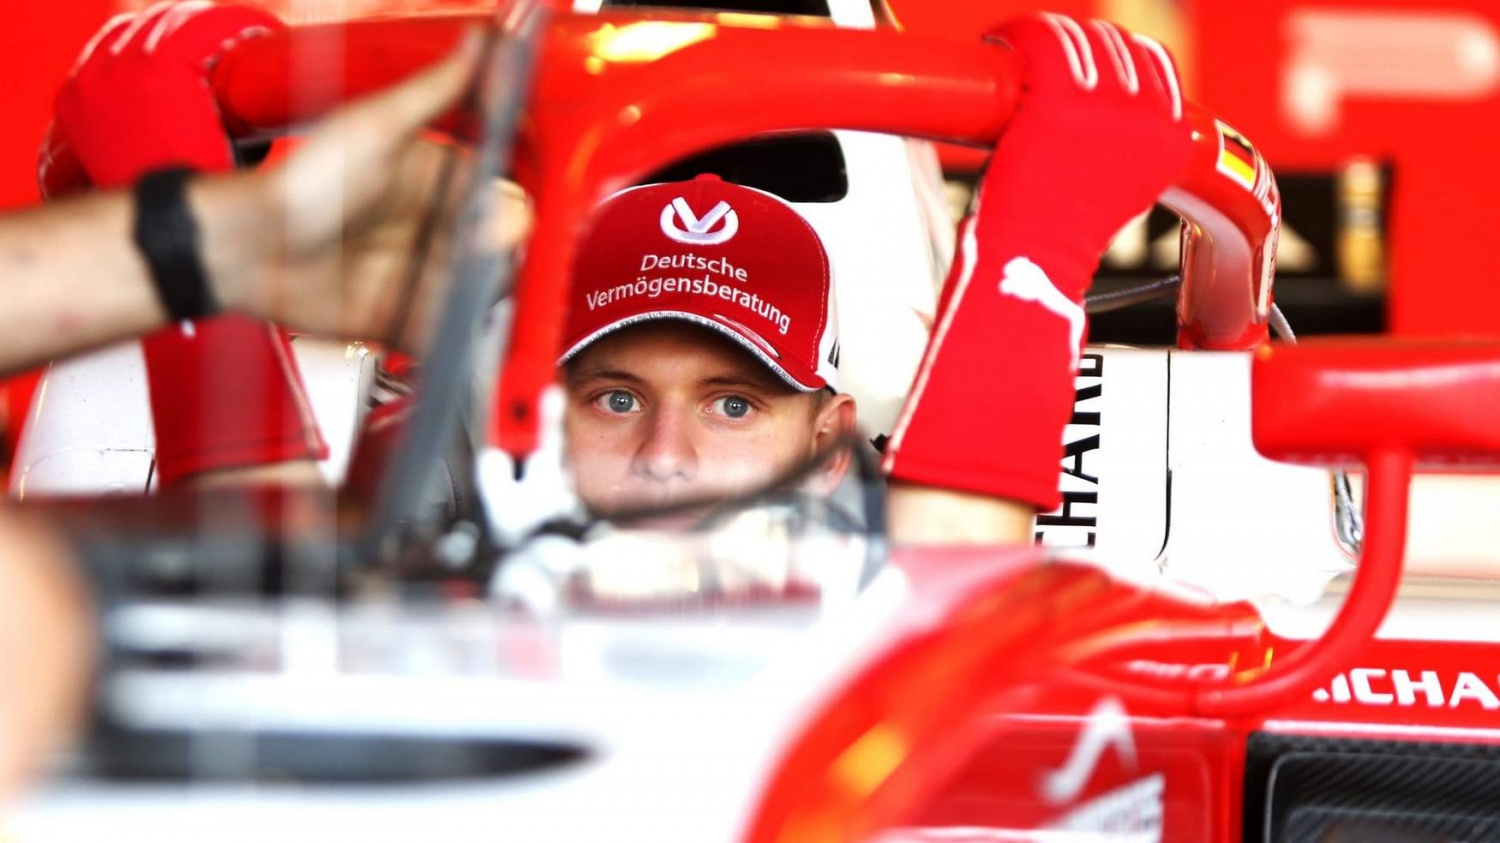 Mick Schumacher ends rookie Formula 2 season with points finish